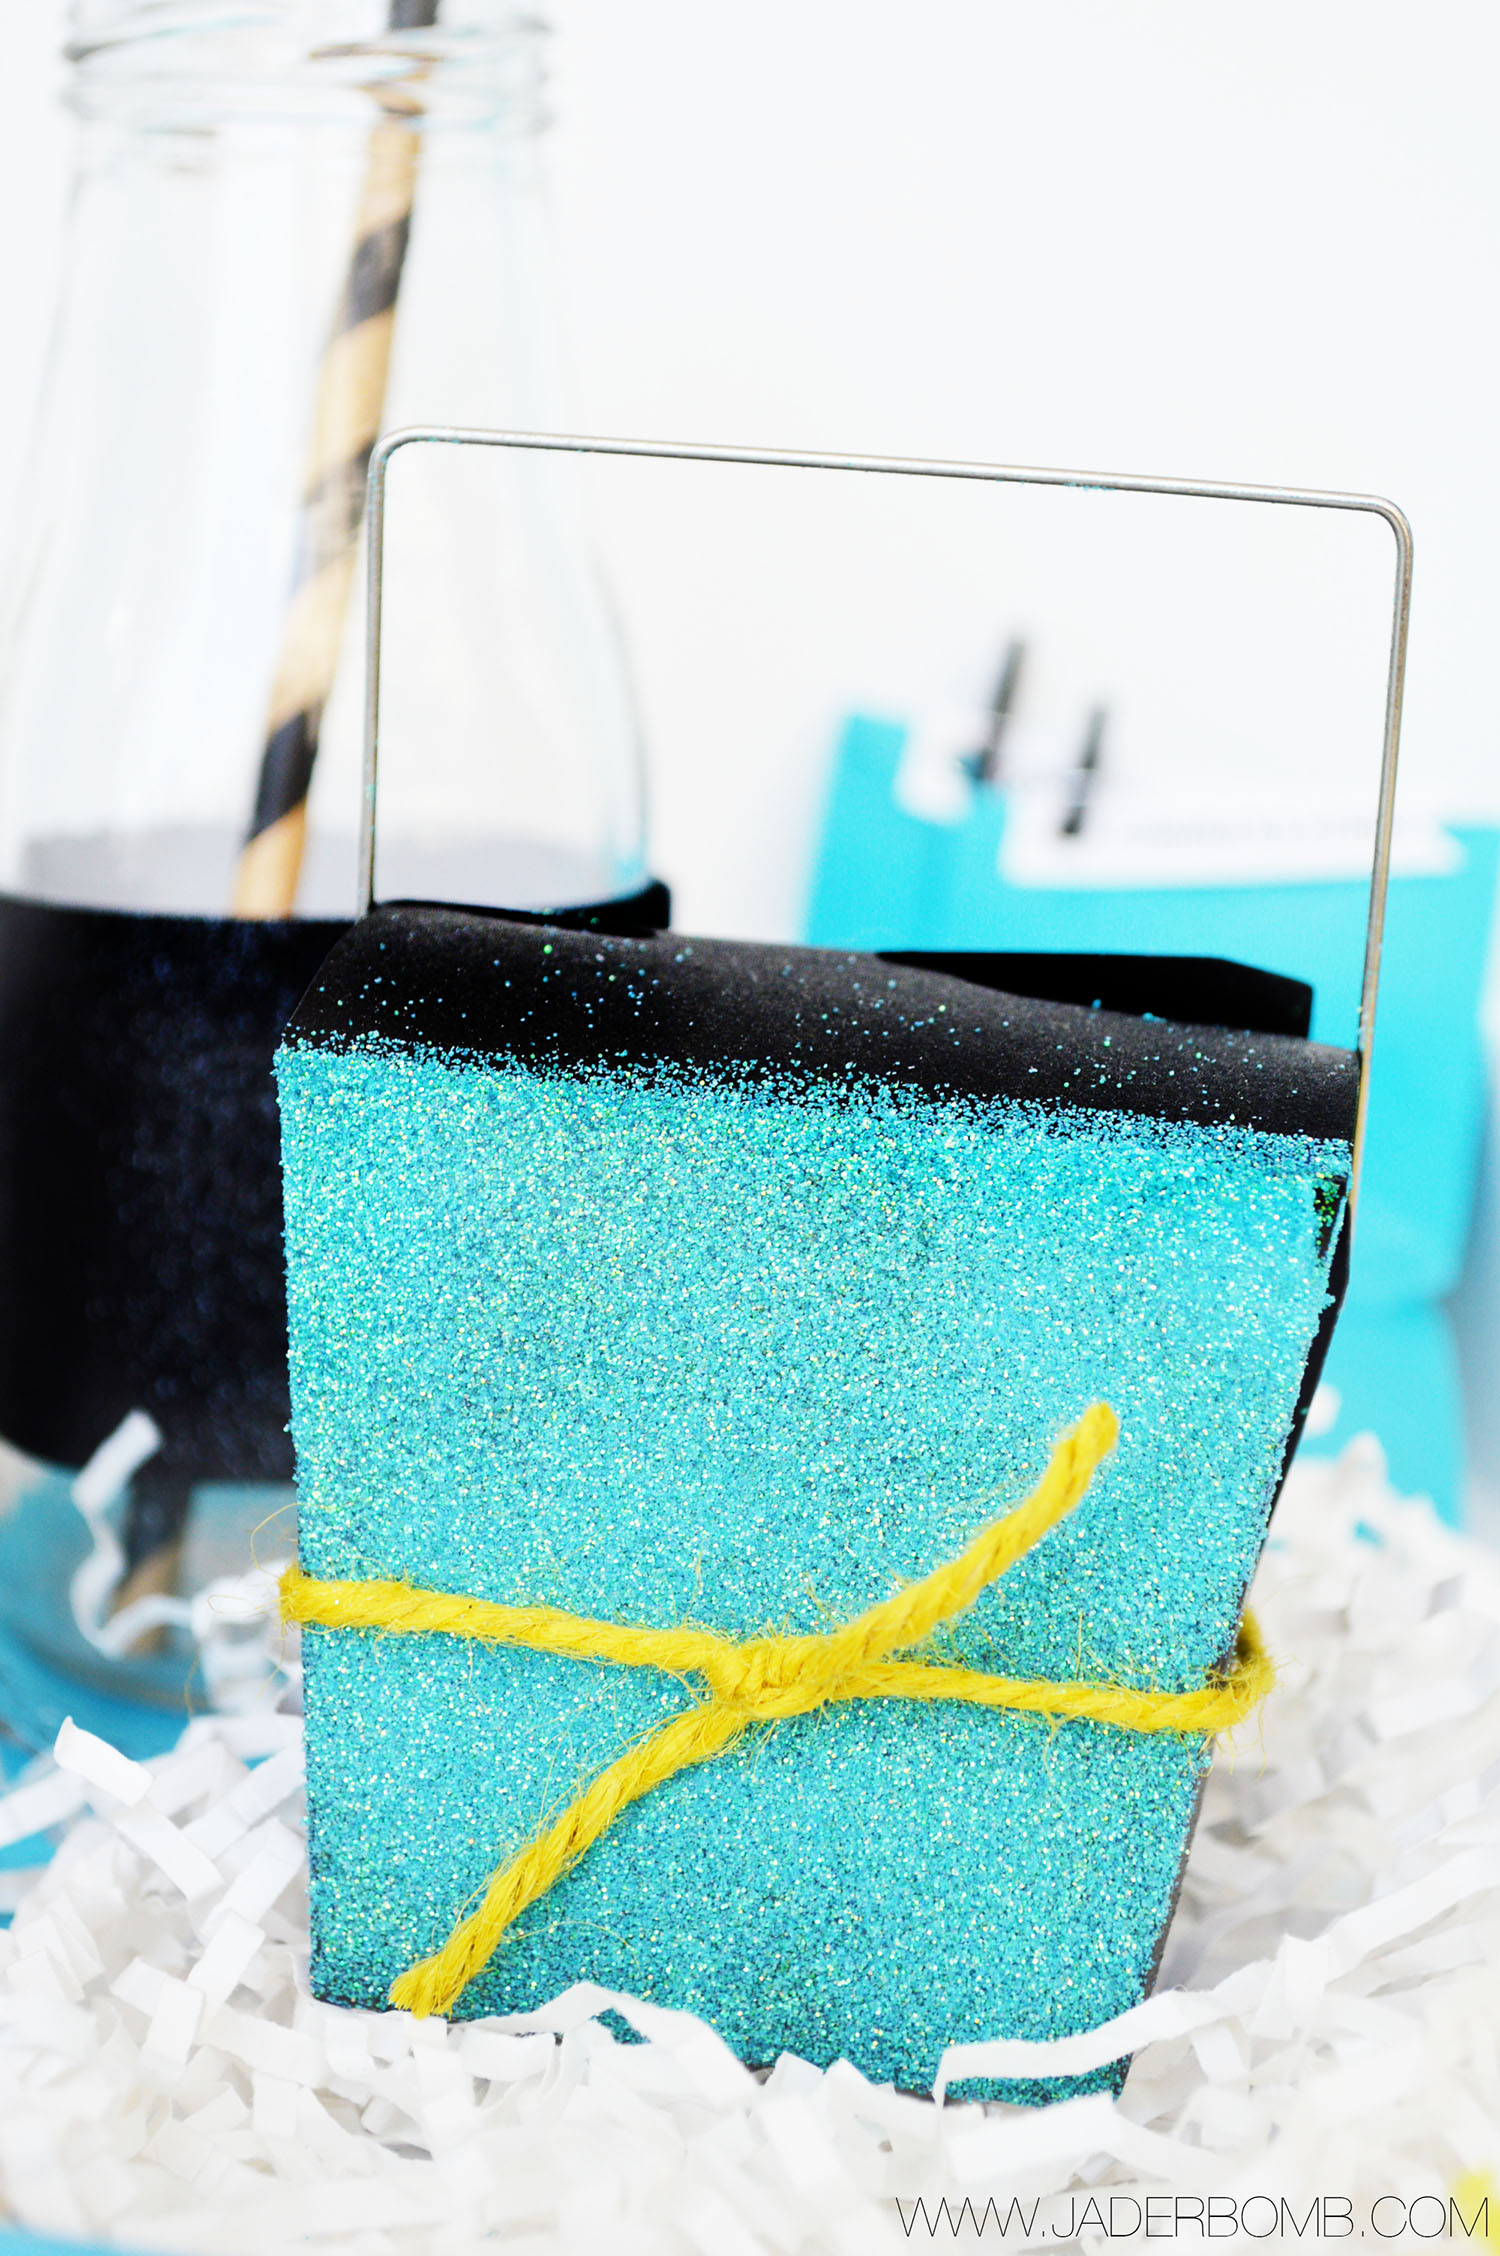 HOW TO MAKE PARTY BOXES